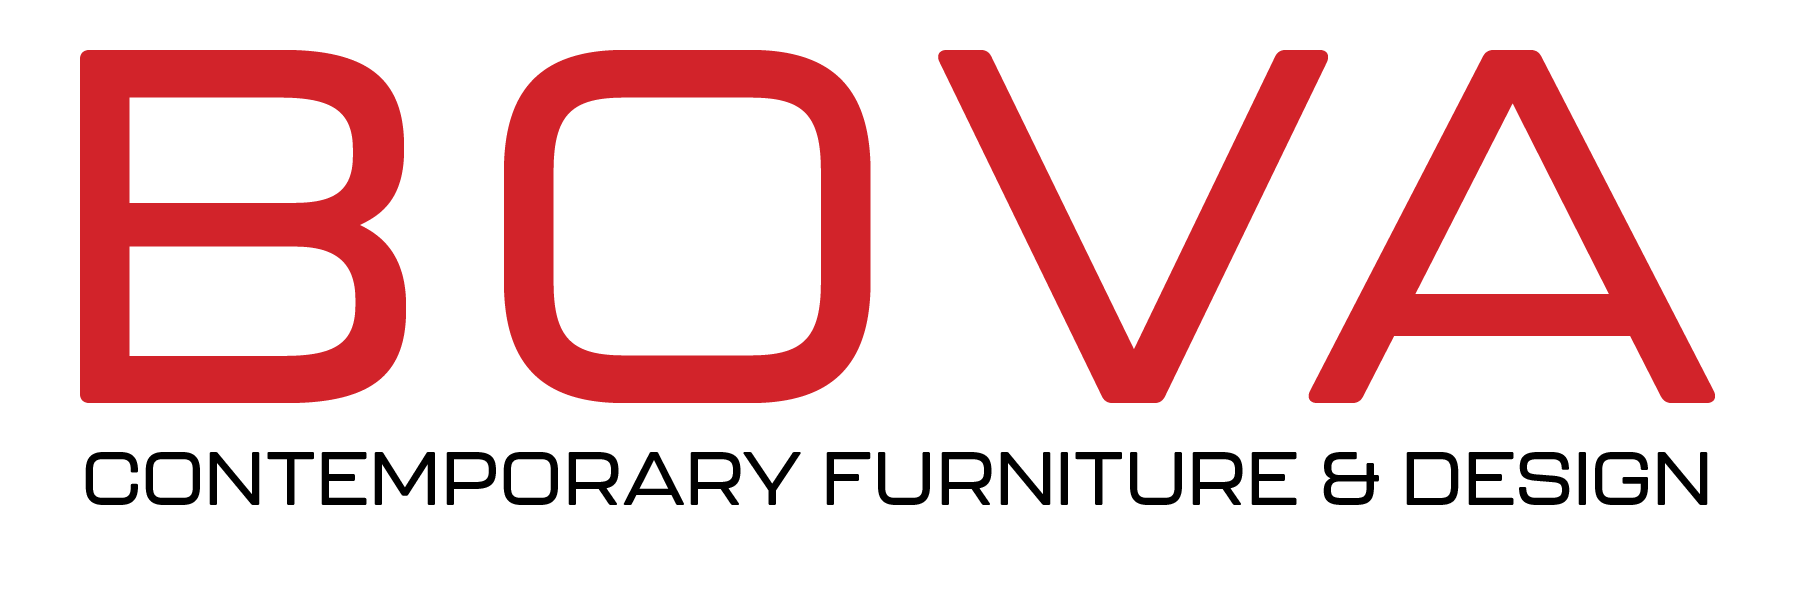 Bova Contemporary Furniture - Dallas, Texas Modern Furniture Store